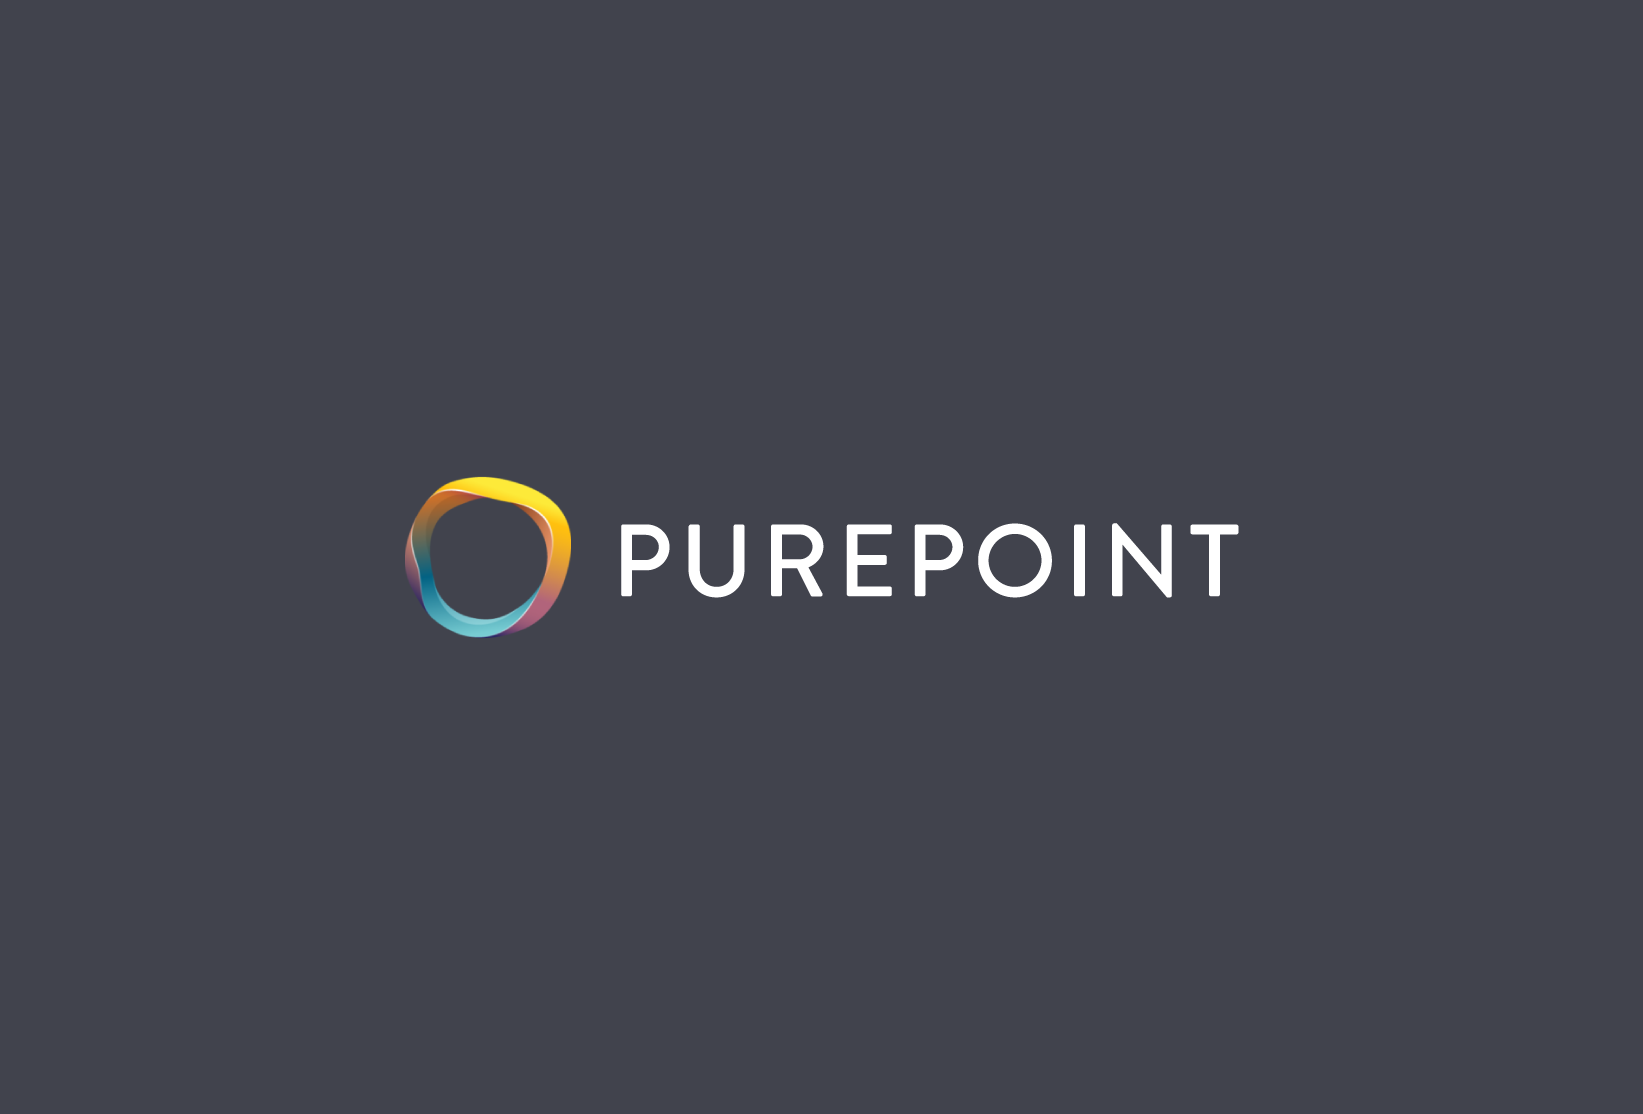 Thank you, Purepoint!